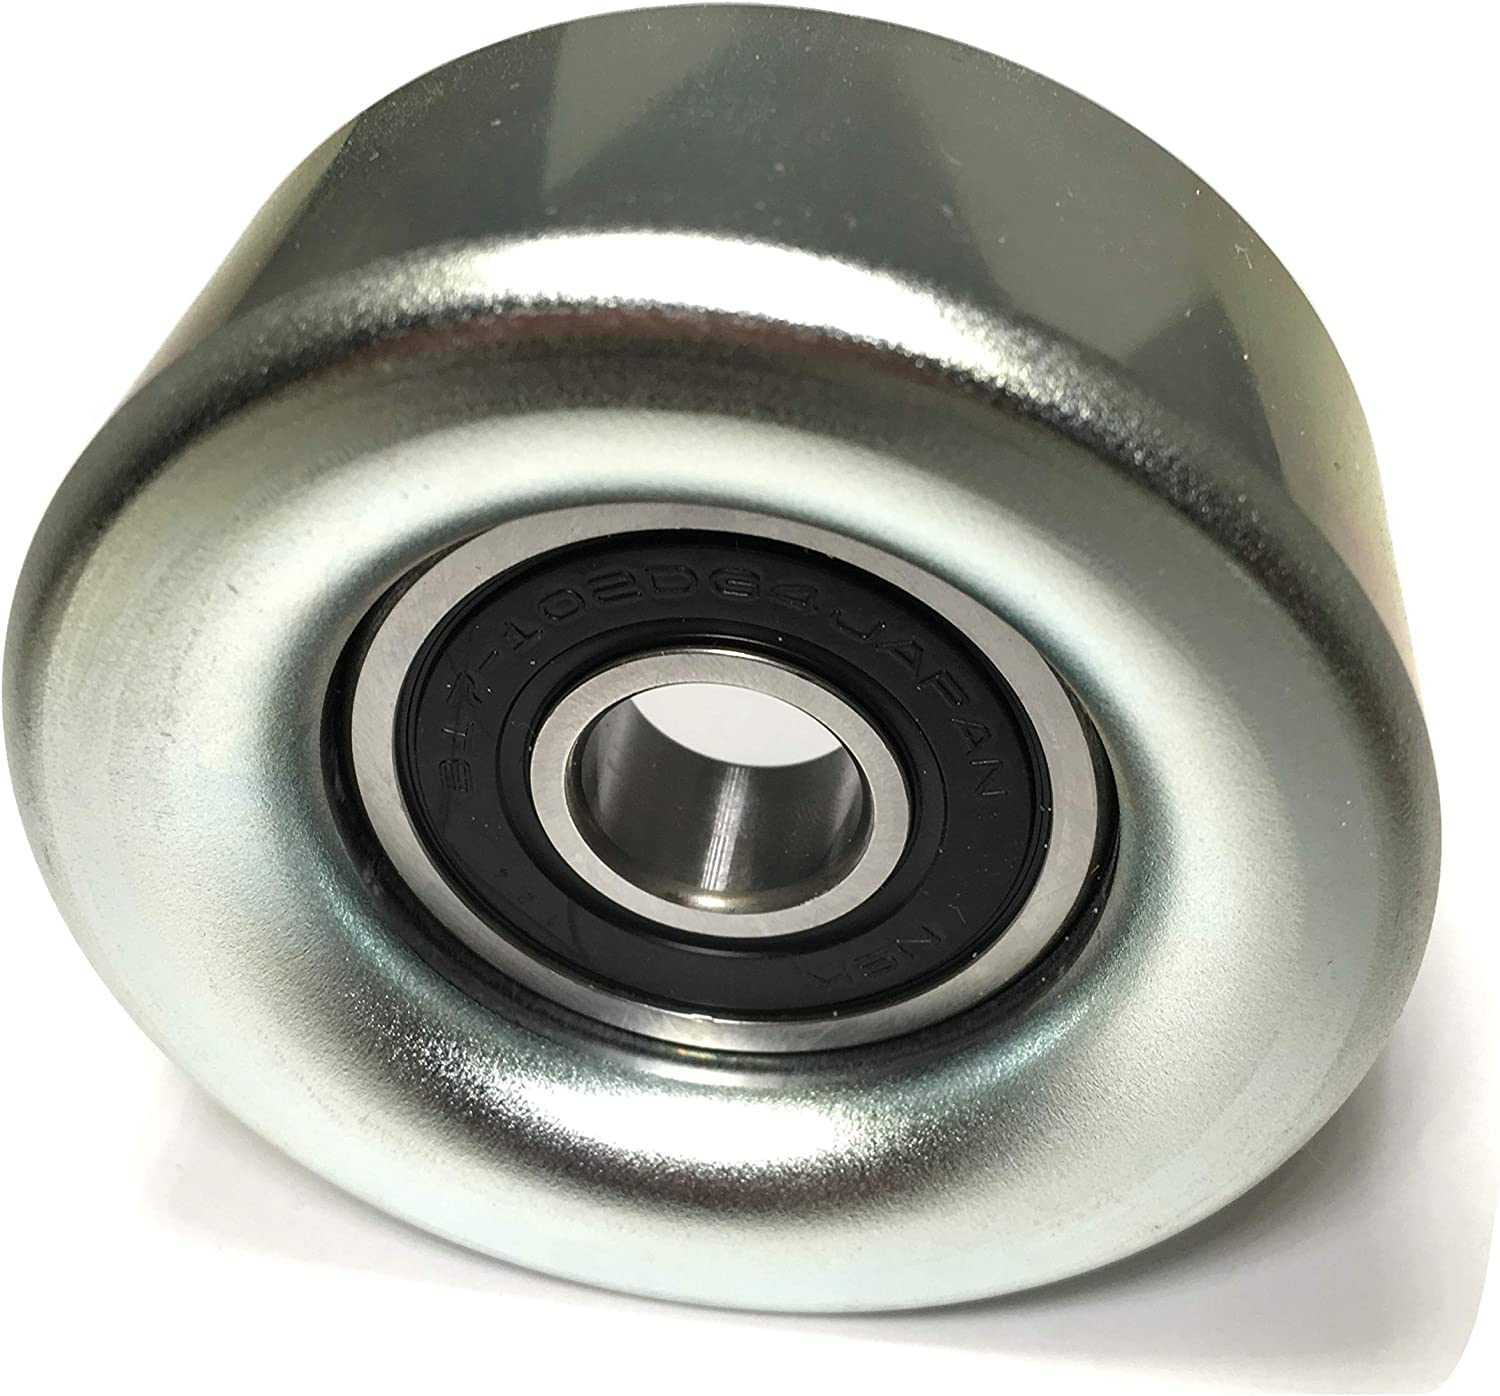 NSK A C Drive Idler Belt Popular brand Pulley 80SPF0345 We OFFer at cheap prices